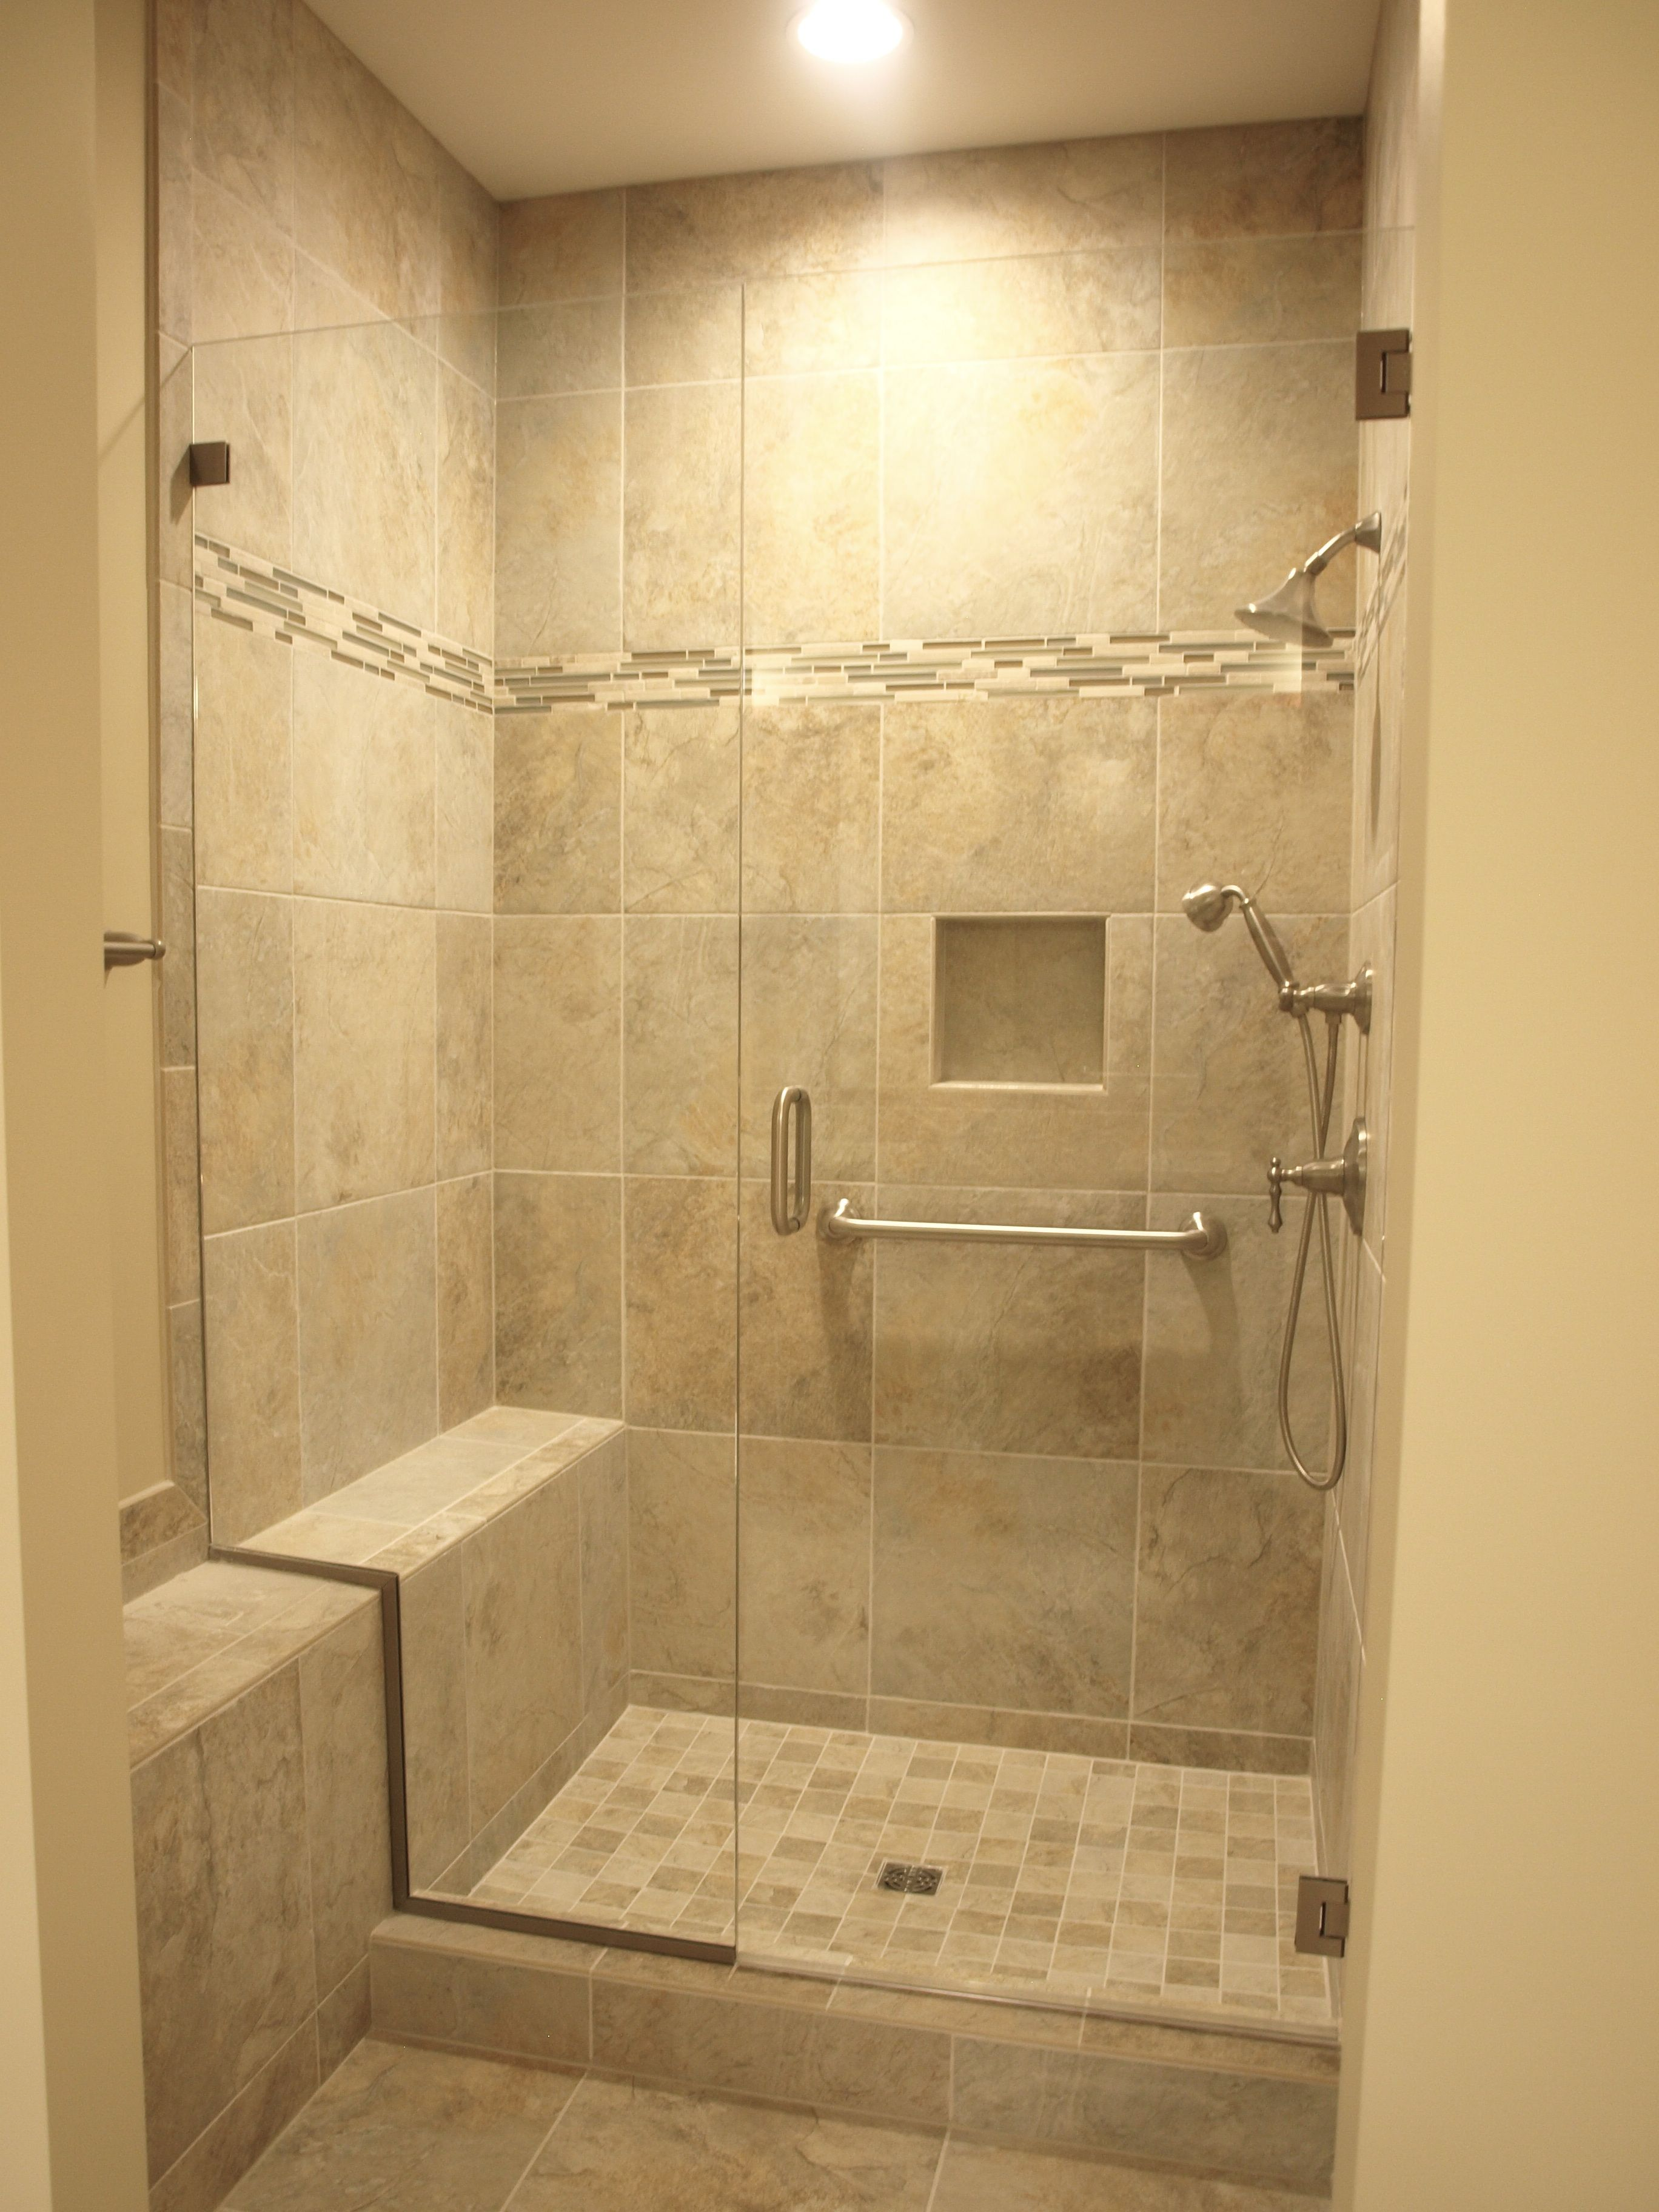 Ceramic Tile Shower Surround With Built In Bench Niche And